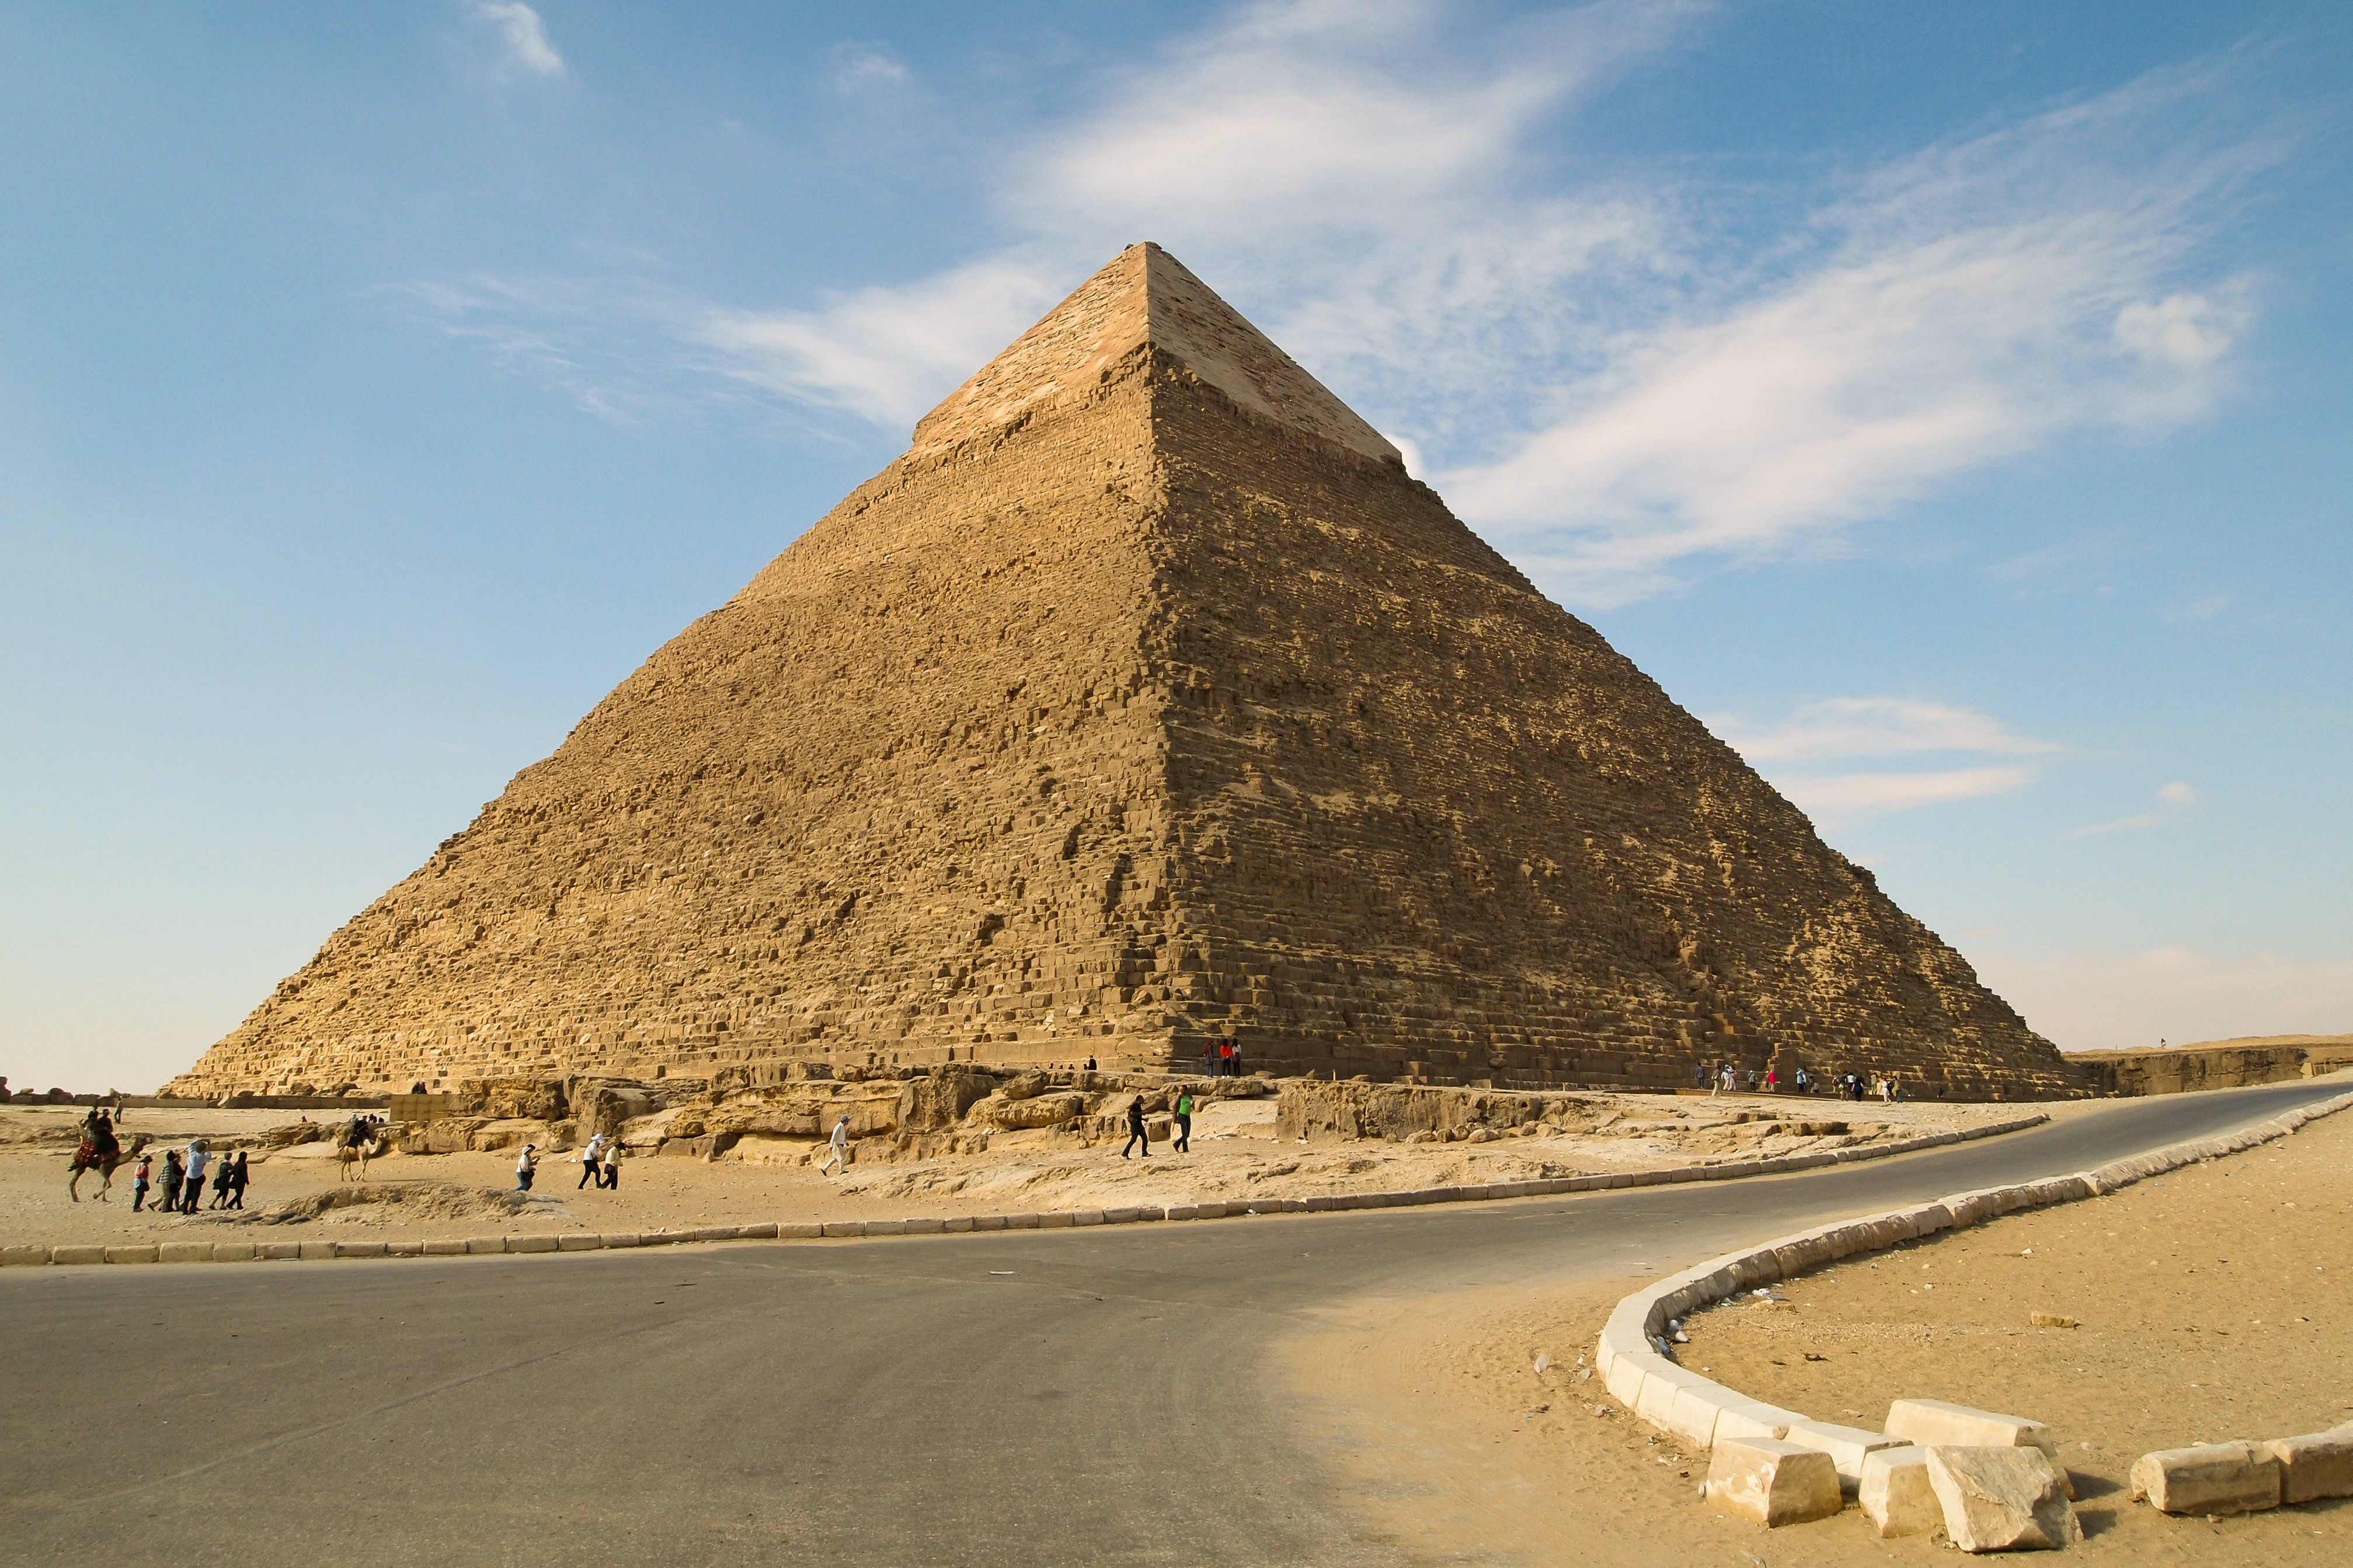 blue sky, large brown pyramid near road and small people and camel figures